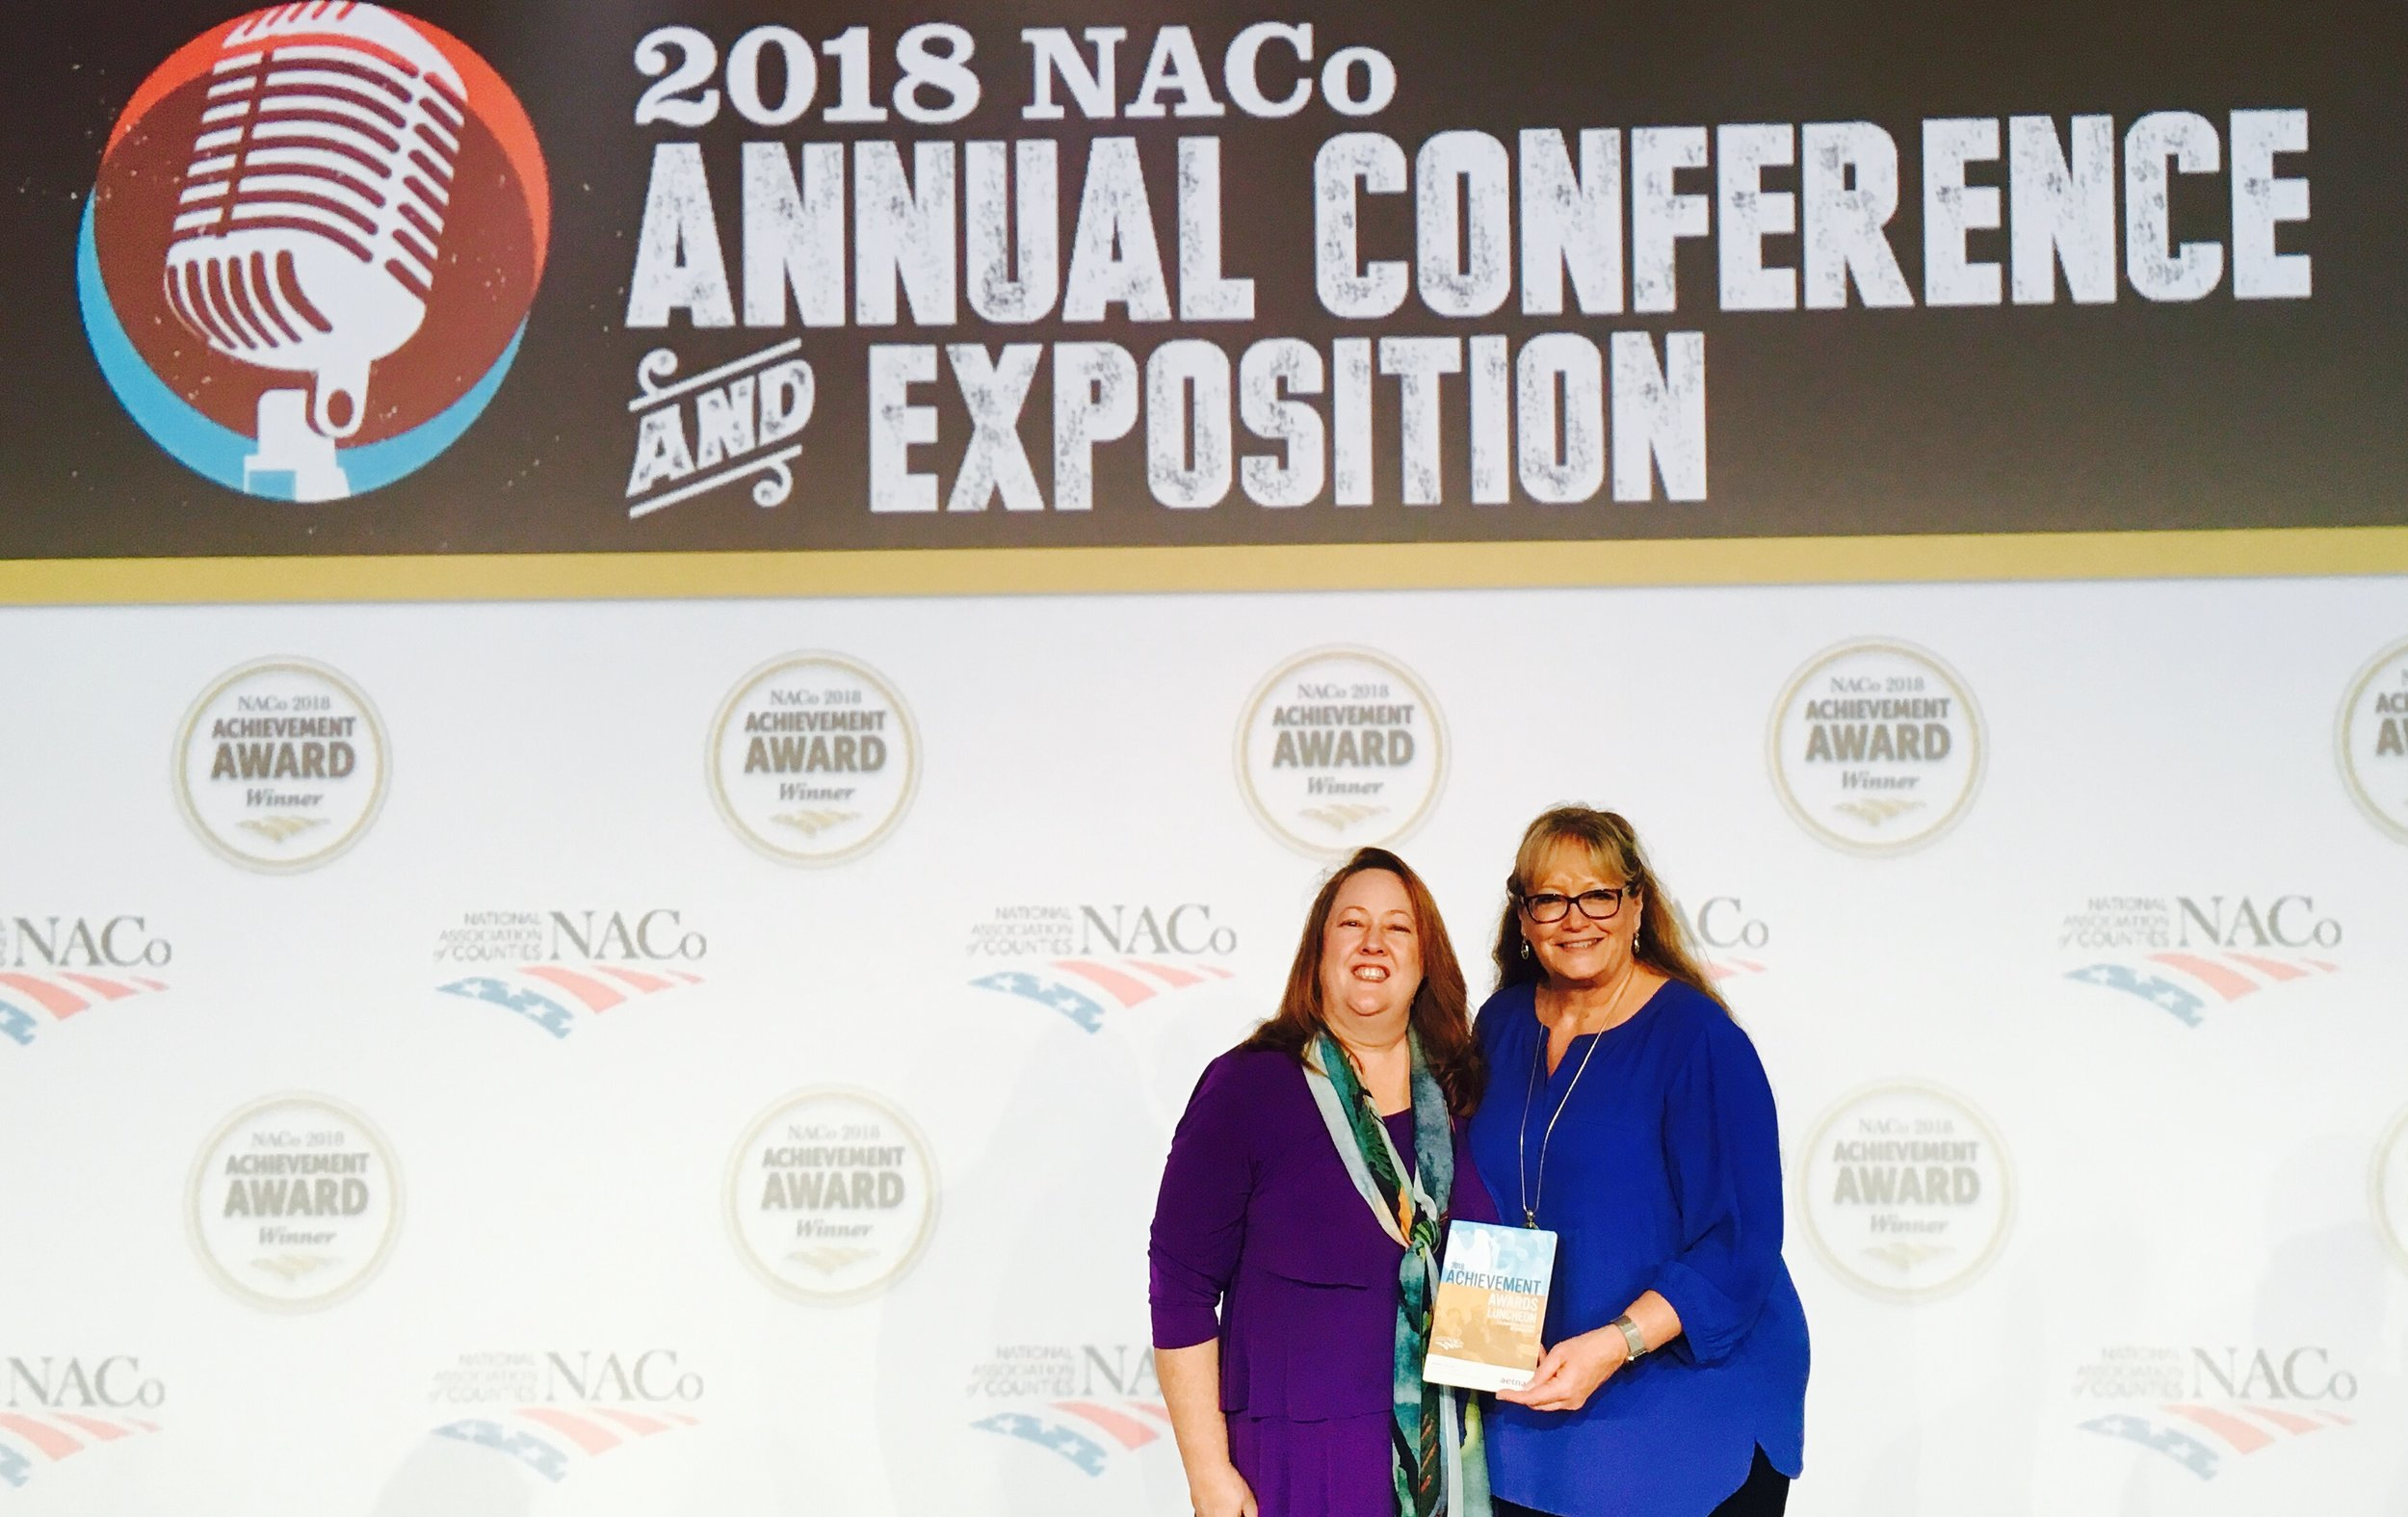 National Association of Counties (NACo) recognized the Made in Maui County Festival (MIMCF) with an Achievement Award in the category of Community and Economic Development.